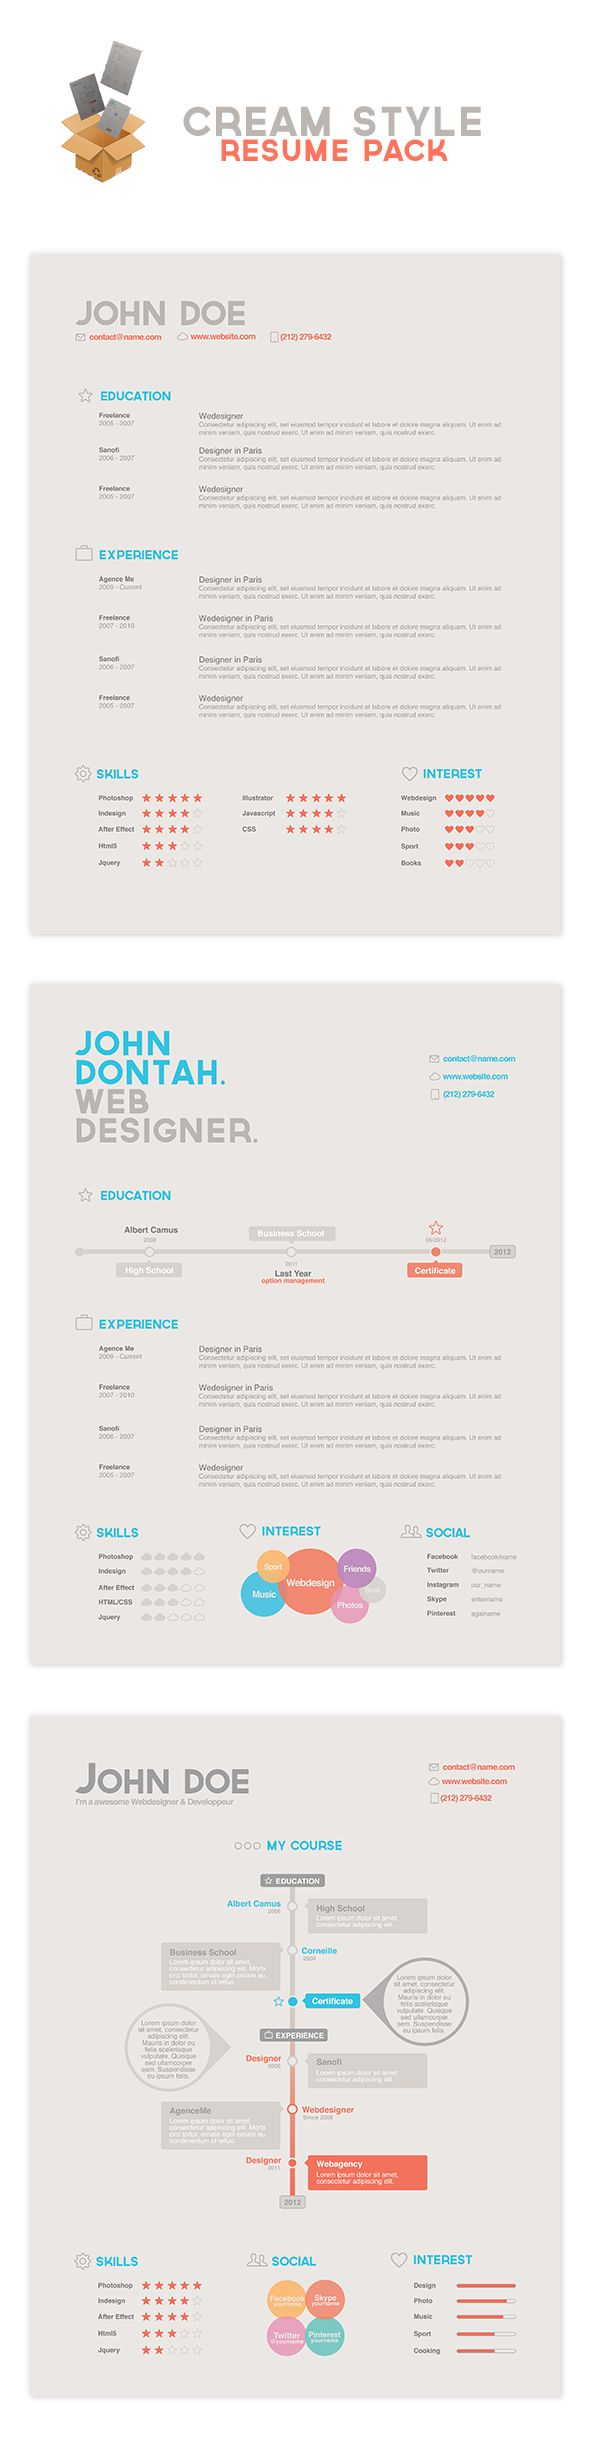 Resume Headers Best 103 Best Resume Design Images On Pinterest  Resume Design Resume .